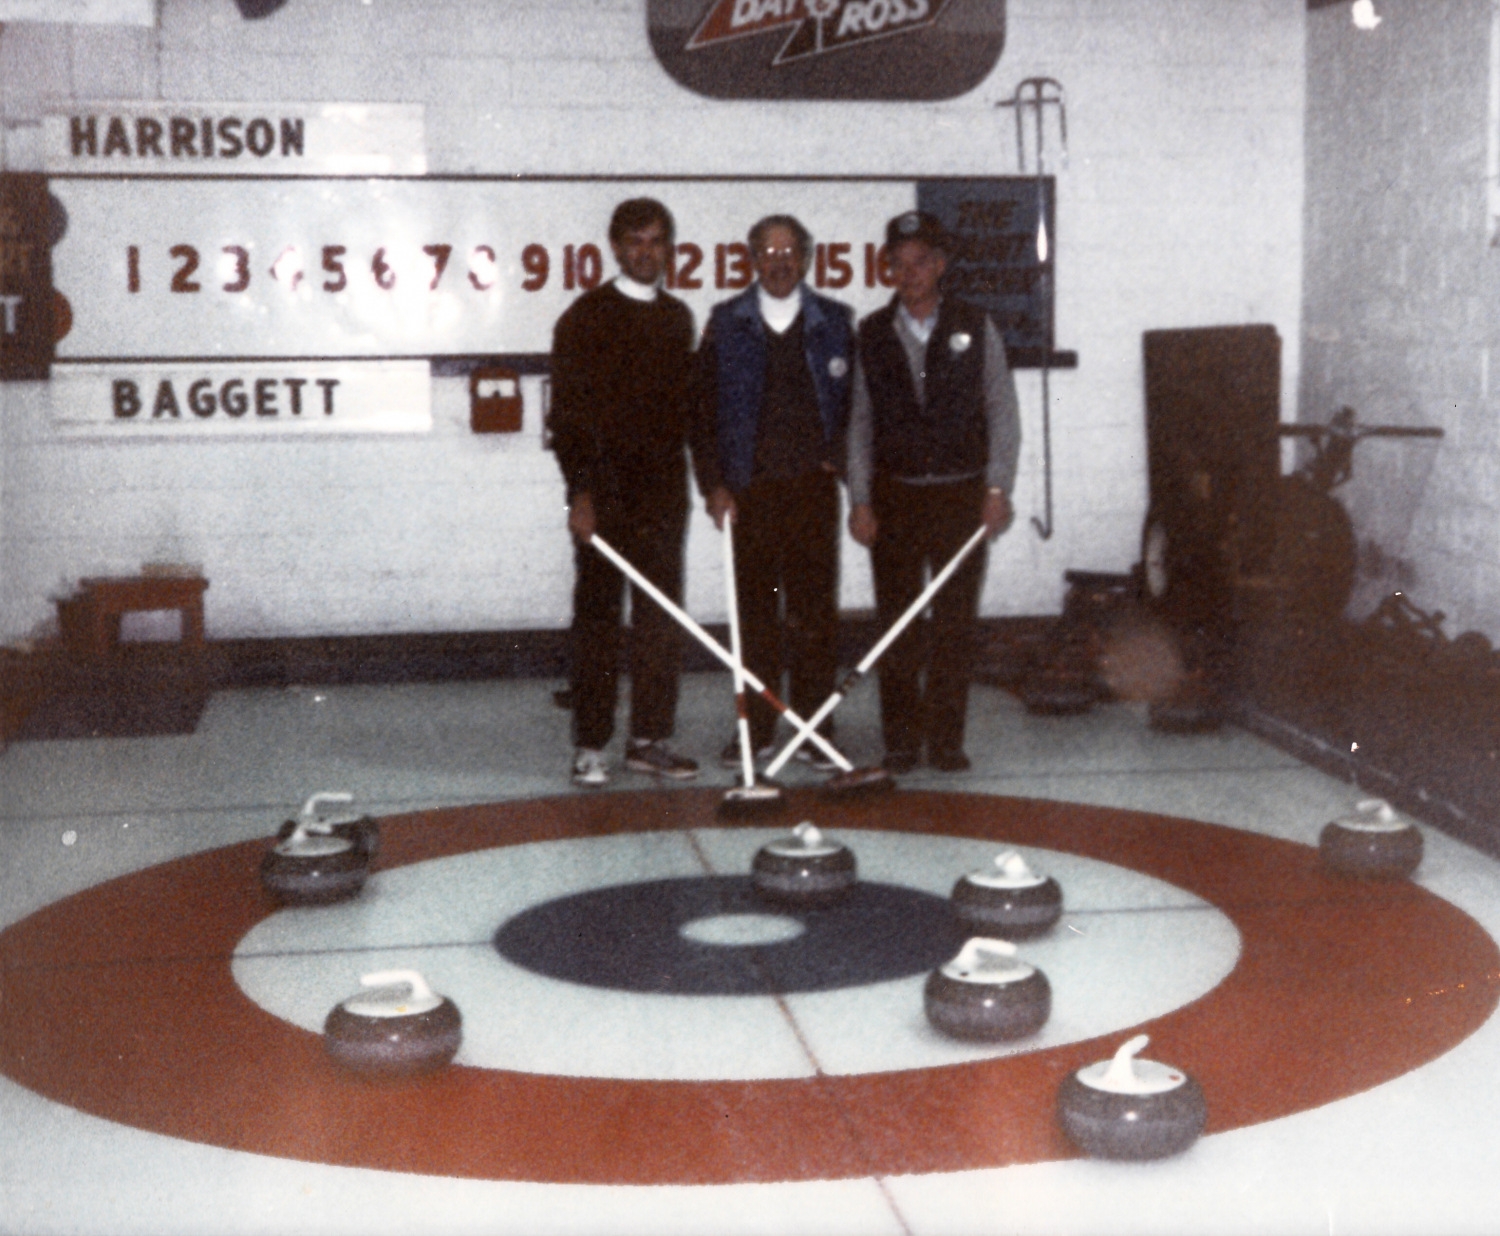 This 8 Ender occurred at the Monctonian and includes Brian Harrison, Ron Cormier and Bud Rayworth